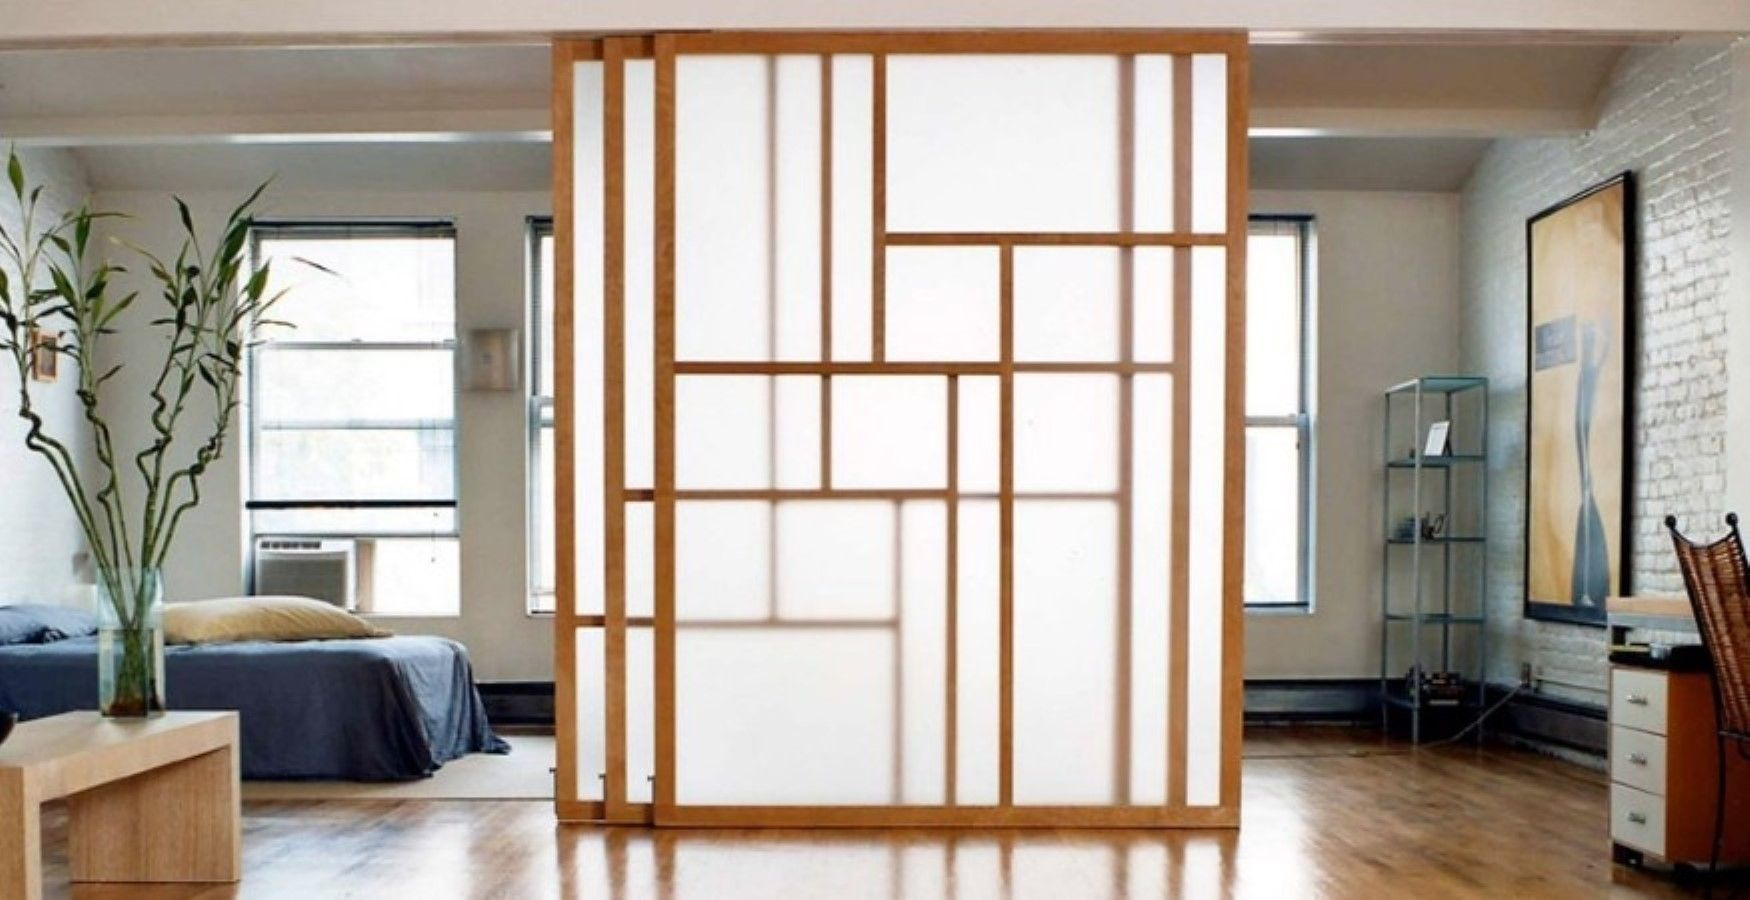 Oriental Sliding Doors Outstanding Japanese Folding Doors Gallery Best Image Engine Pezcame Com Room Divider Doors Room Divider Walls Room Divider